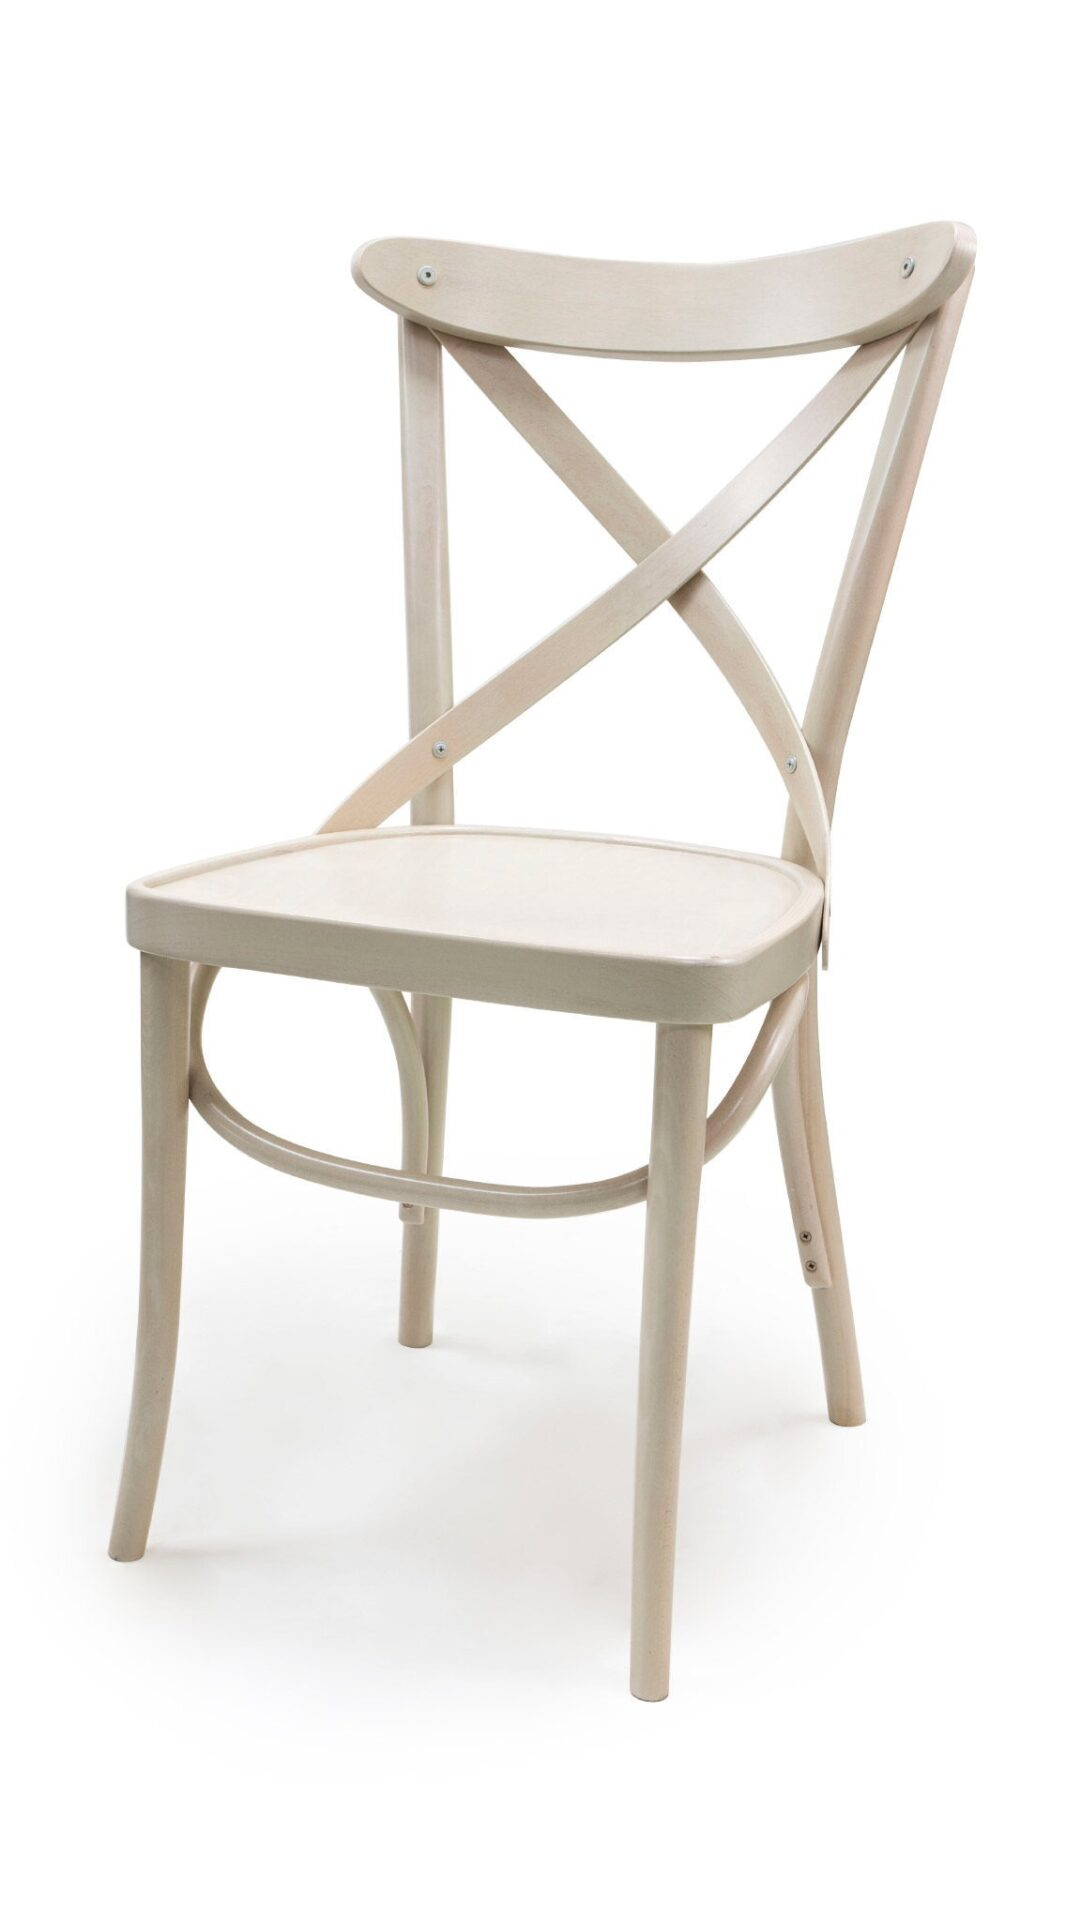 Solid Wood Chair made of Beech